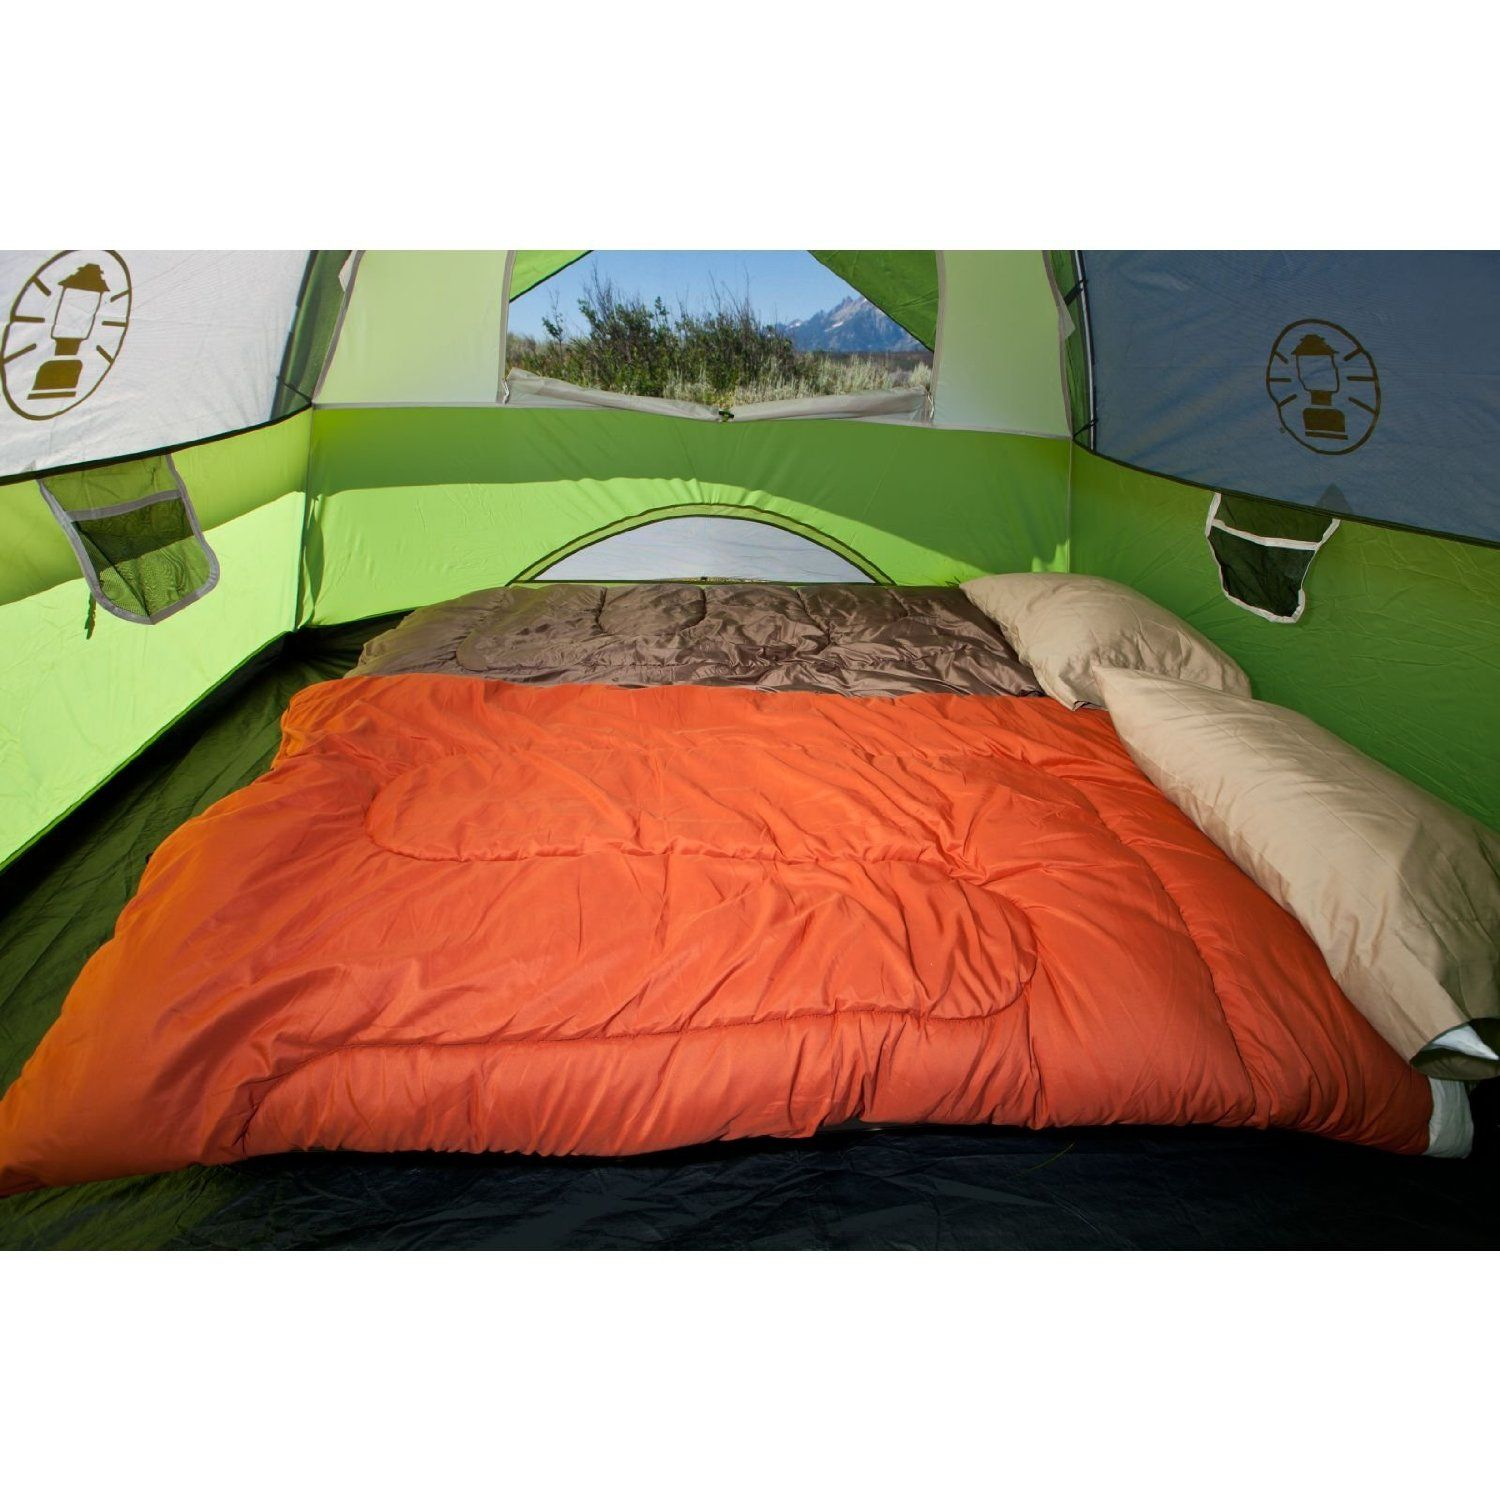 The Coleman sundome tent is good for weekend automobile c&ers prolonged C&ing trips scout troops u0026 Summer fun. Coleman tents are designed for simple  sc 1 st  Pinterest & Coleman Sundome 4P | || T E N T S || | Pinterest | Tents